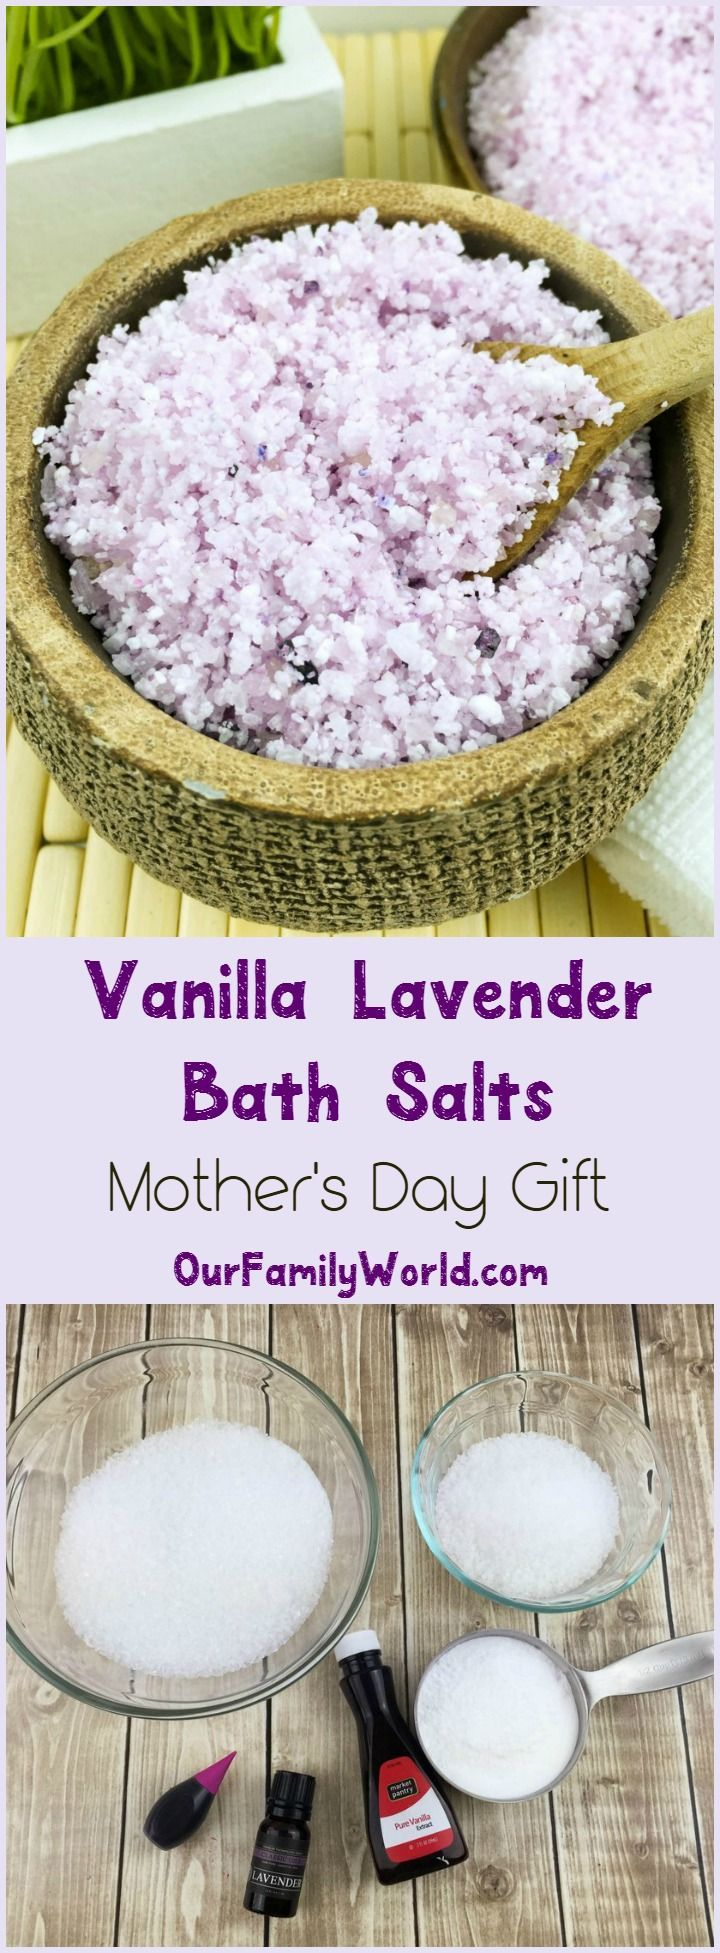 Give mom the gift of relaxation with this easy DIY Vanilla lavender bath salts Mother's Day gift idea! It's easy to make yet so luxurious!